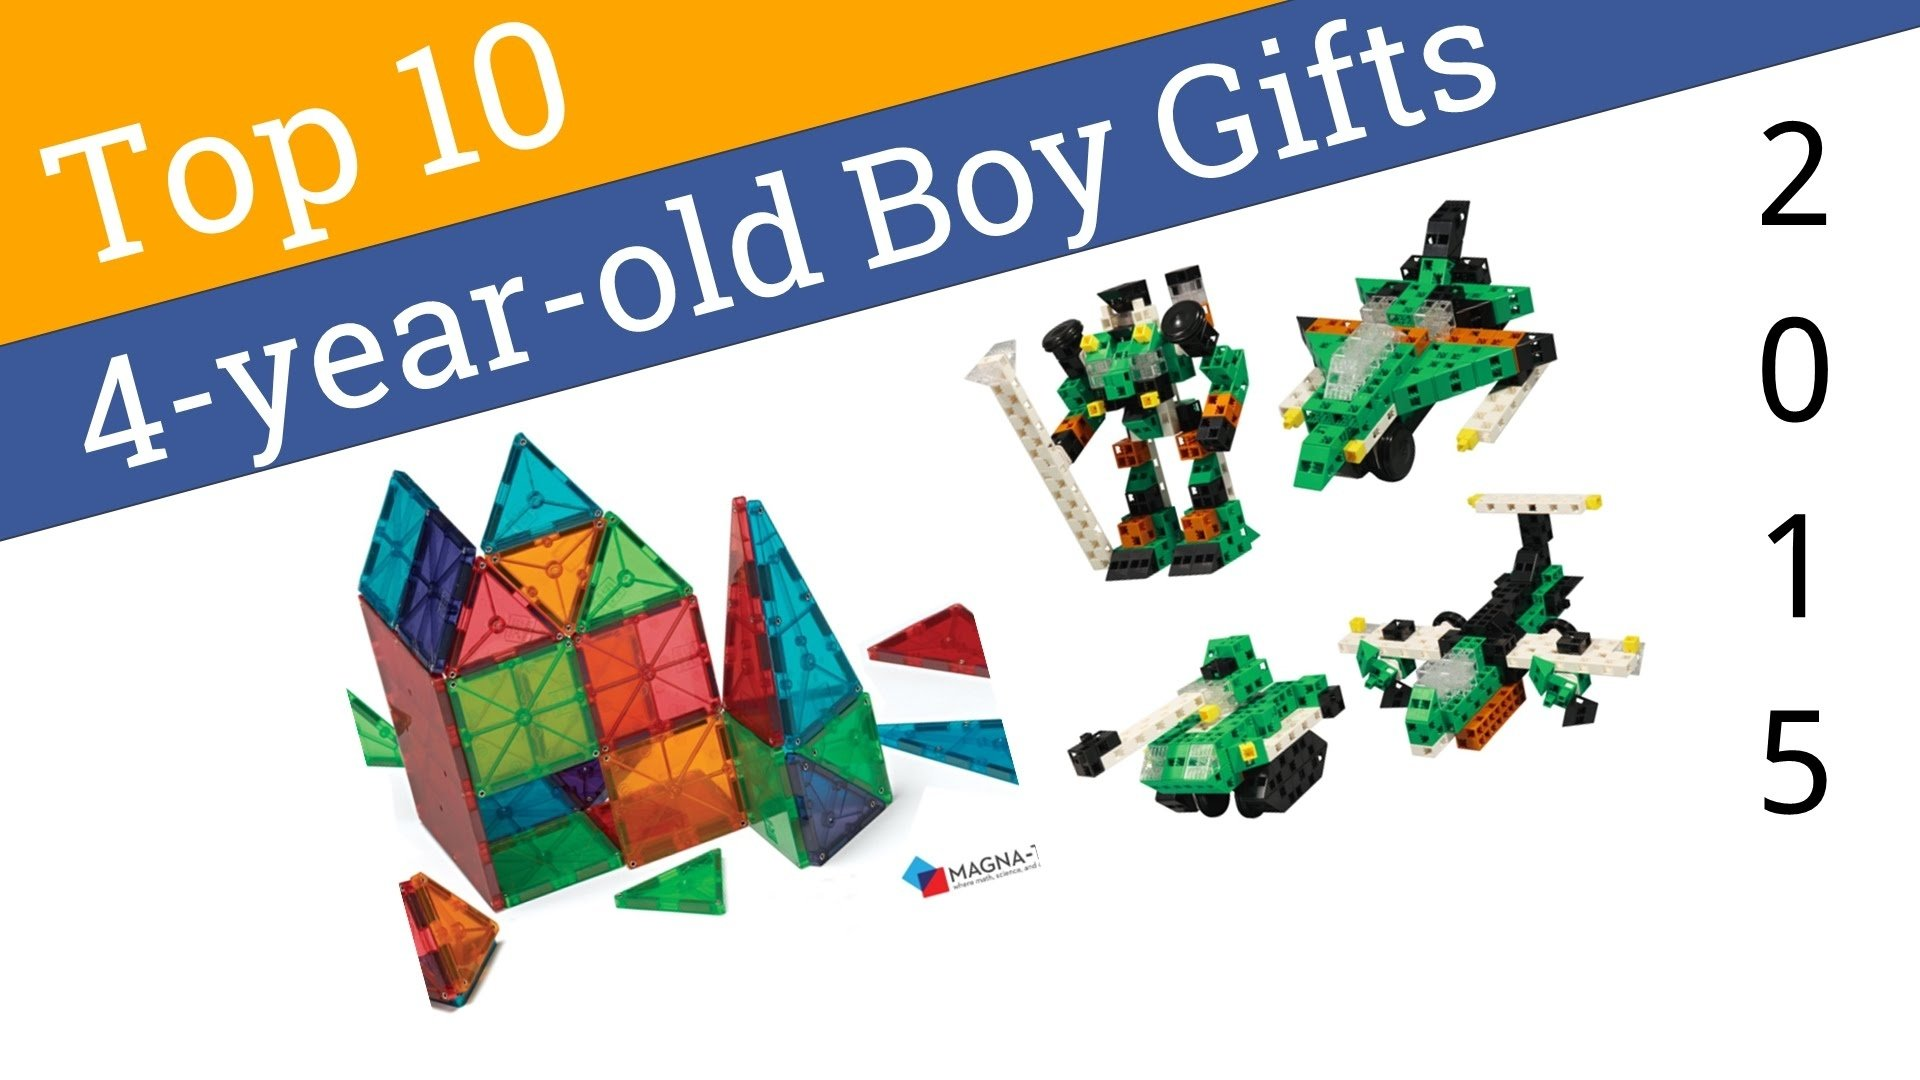 10 best gifts for 4-year old boys 2015 - youtube